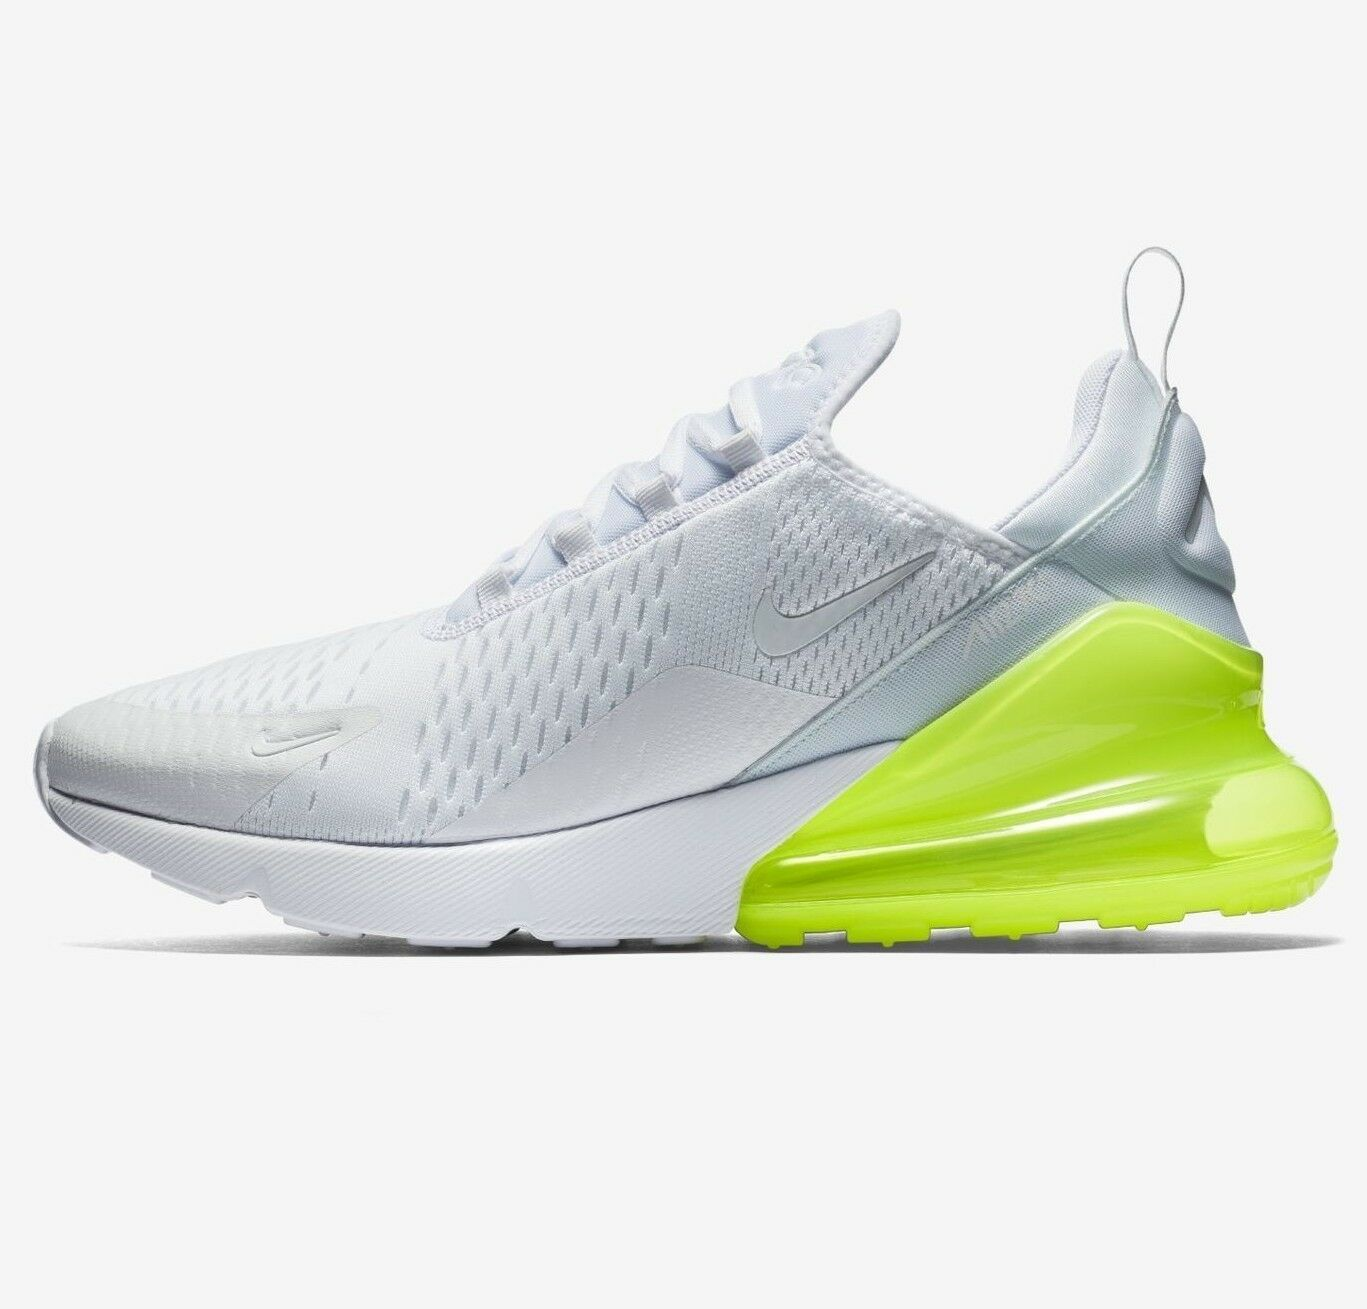 Mens Nike AIR MAX 270 Running shoes -White Volt -AH8050 104 -Sz 13 -New